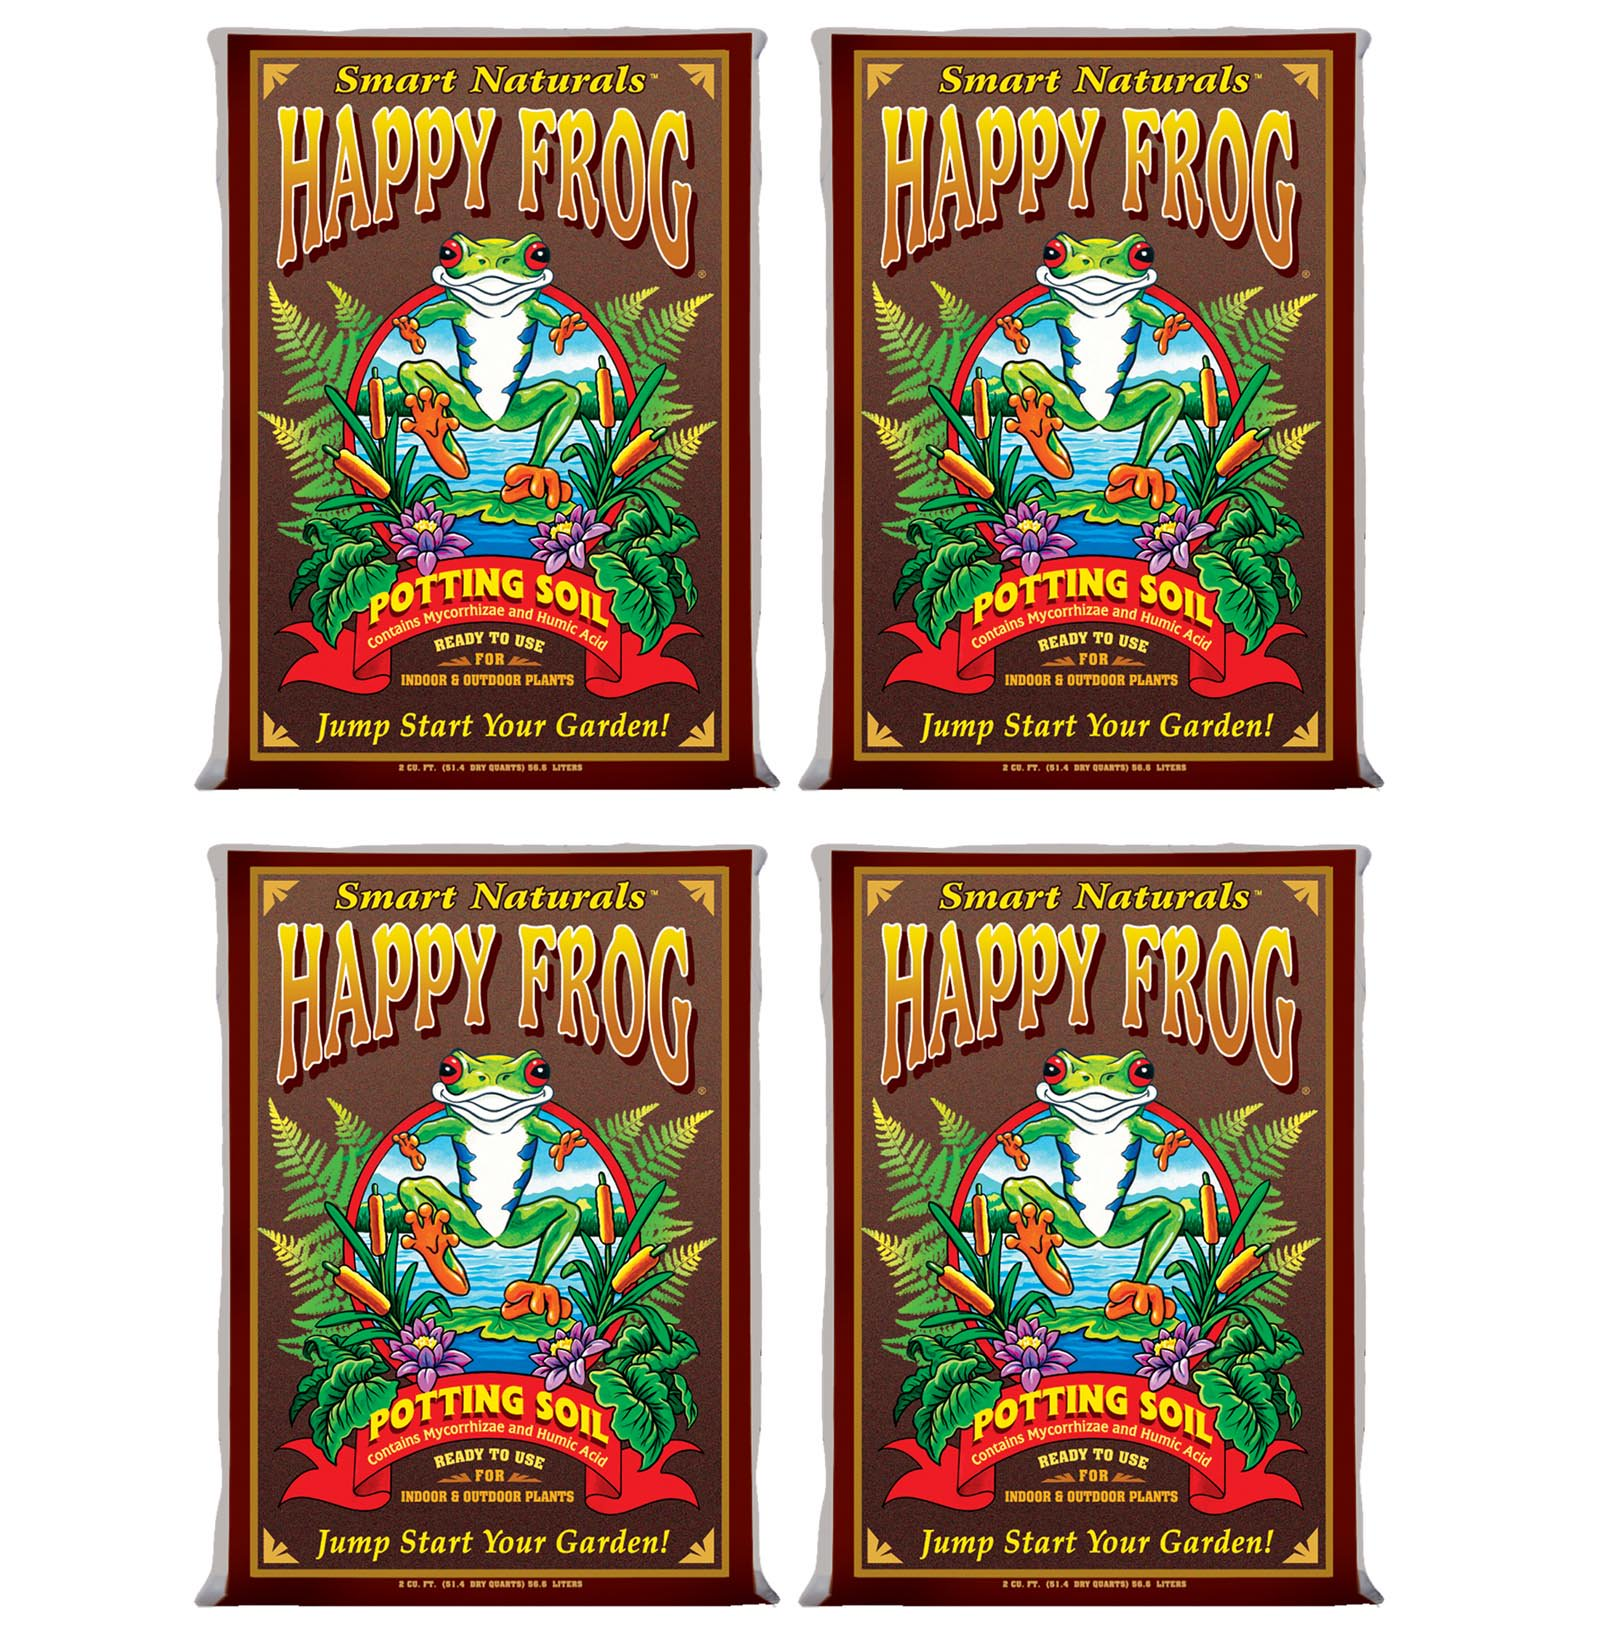 (4) FOXFARM FX14047 pH Adjusted Happy Frog Organic Potting Soil Bags | 8 Cu Ft